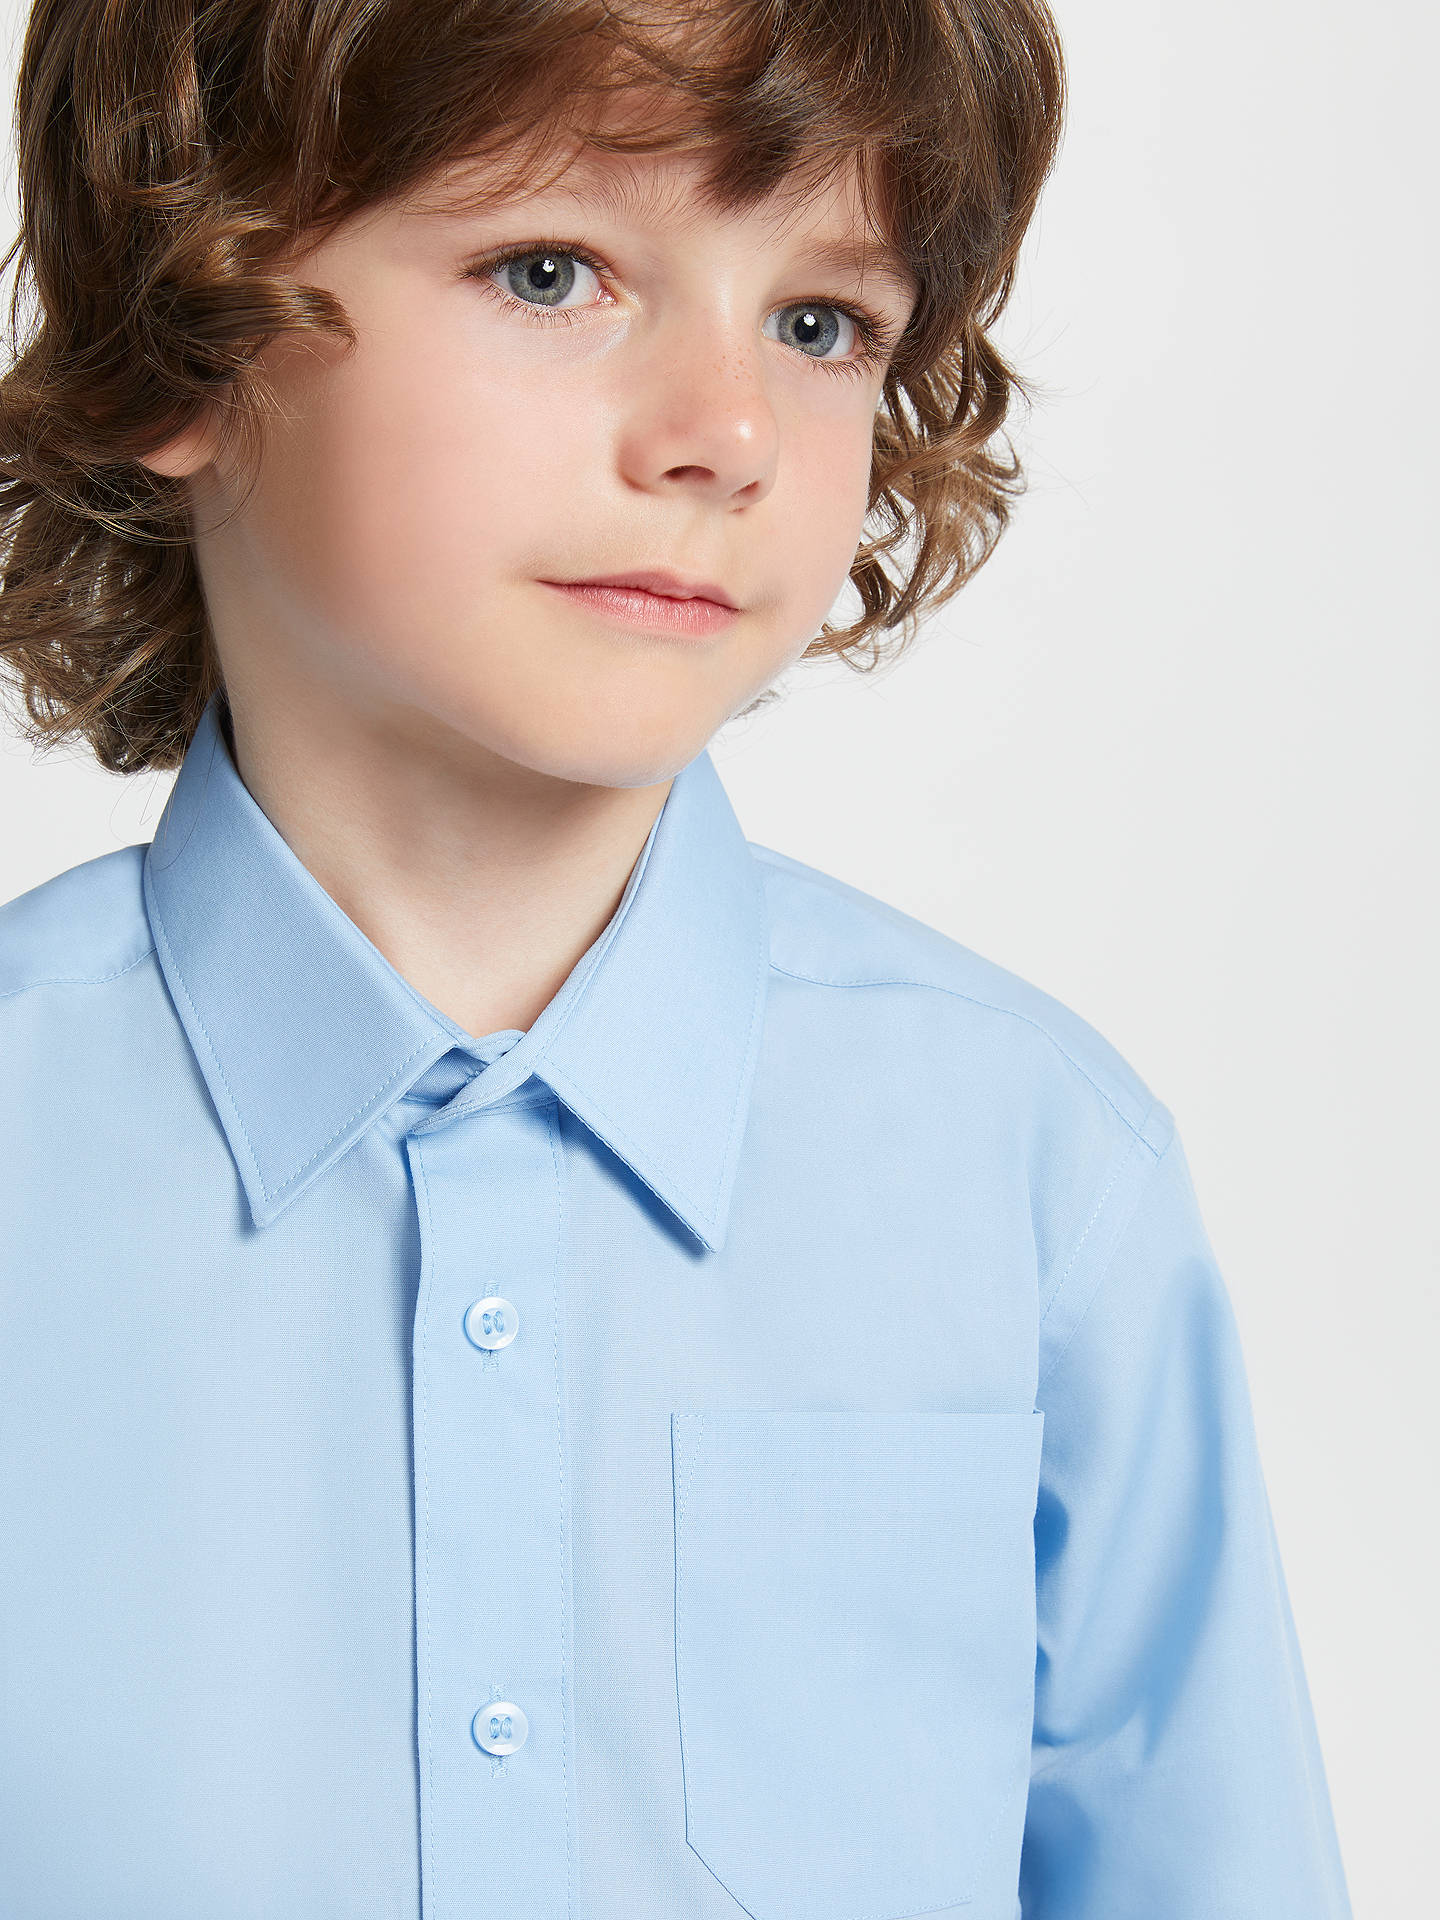 BuyJohn Lewis & Partners Easy Care Long Sleeve School Shirt, Pack of 2, Blue, 3 years Online at johnlewis.com